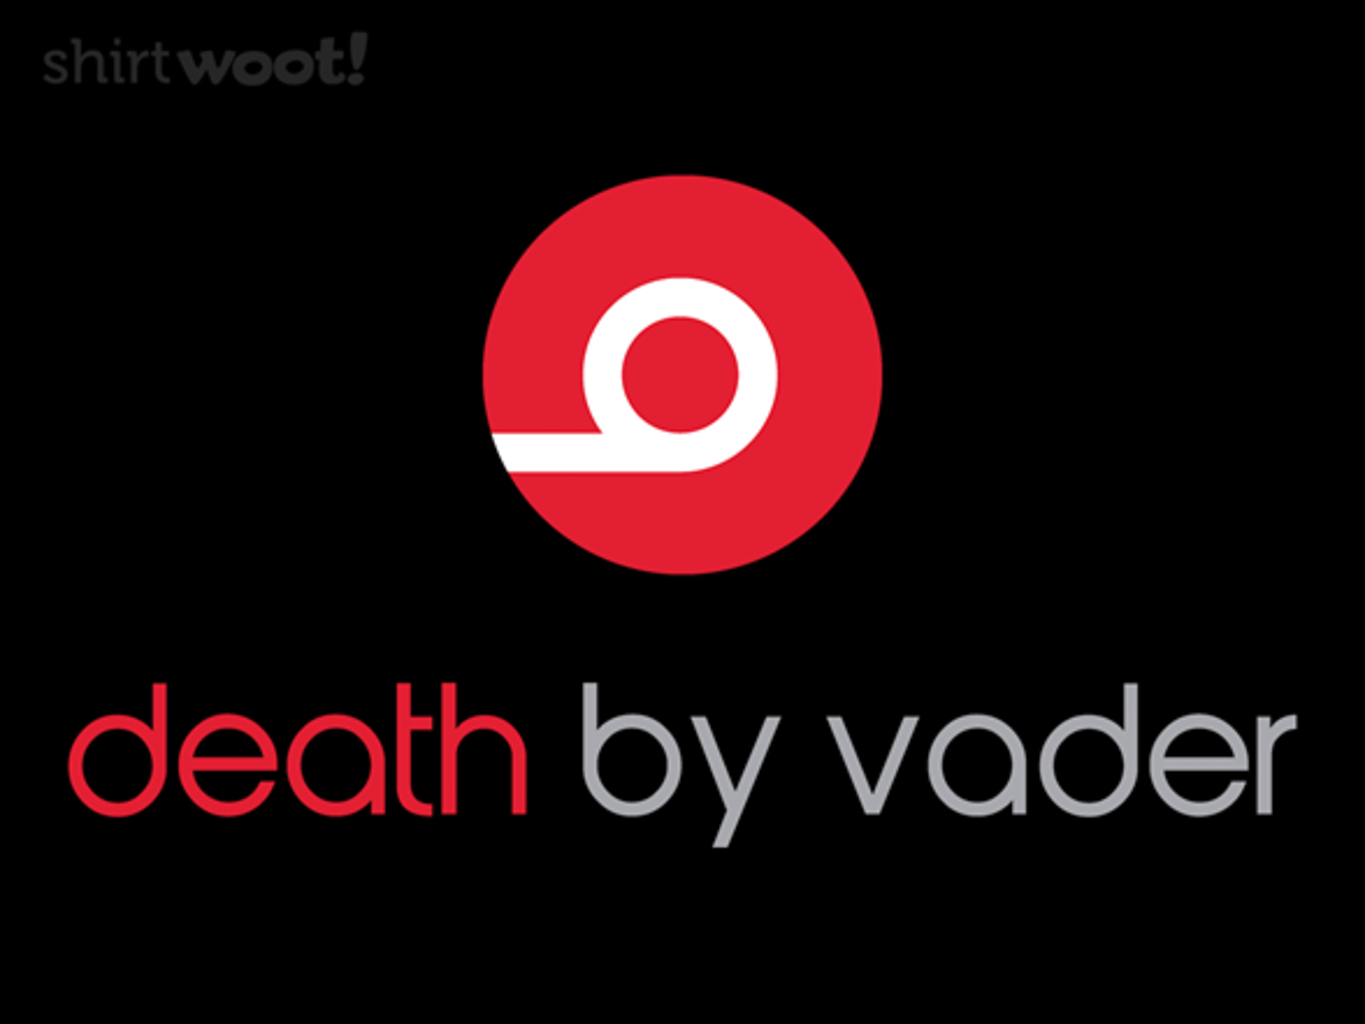 Woot!: Death by Vader - $15.00 + Free shipping